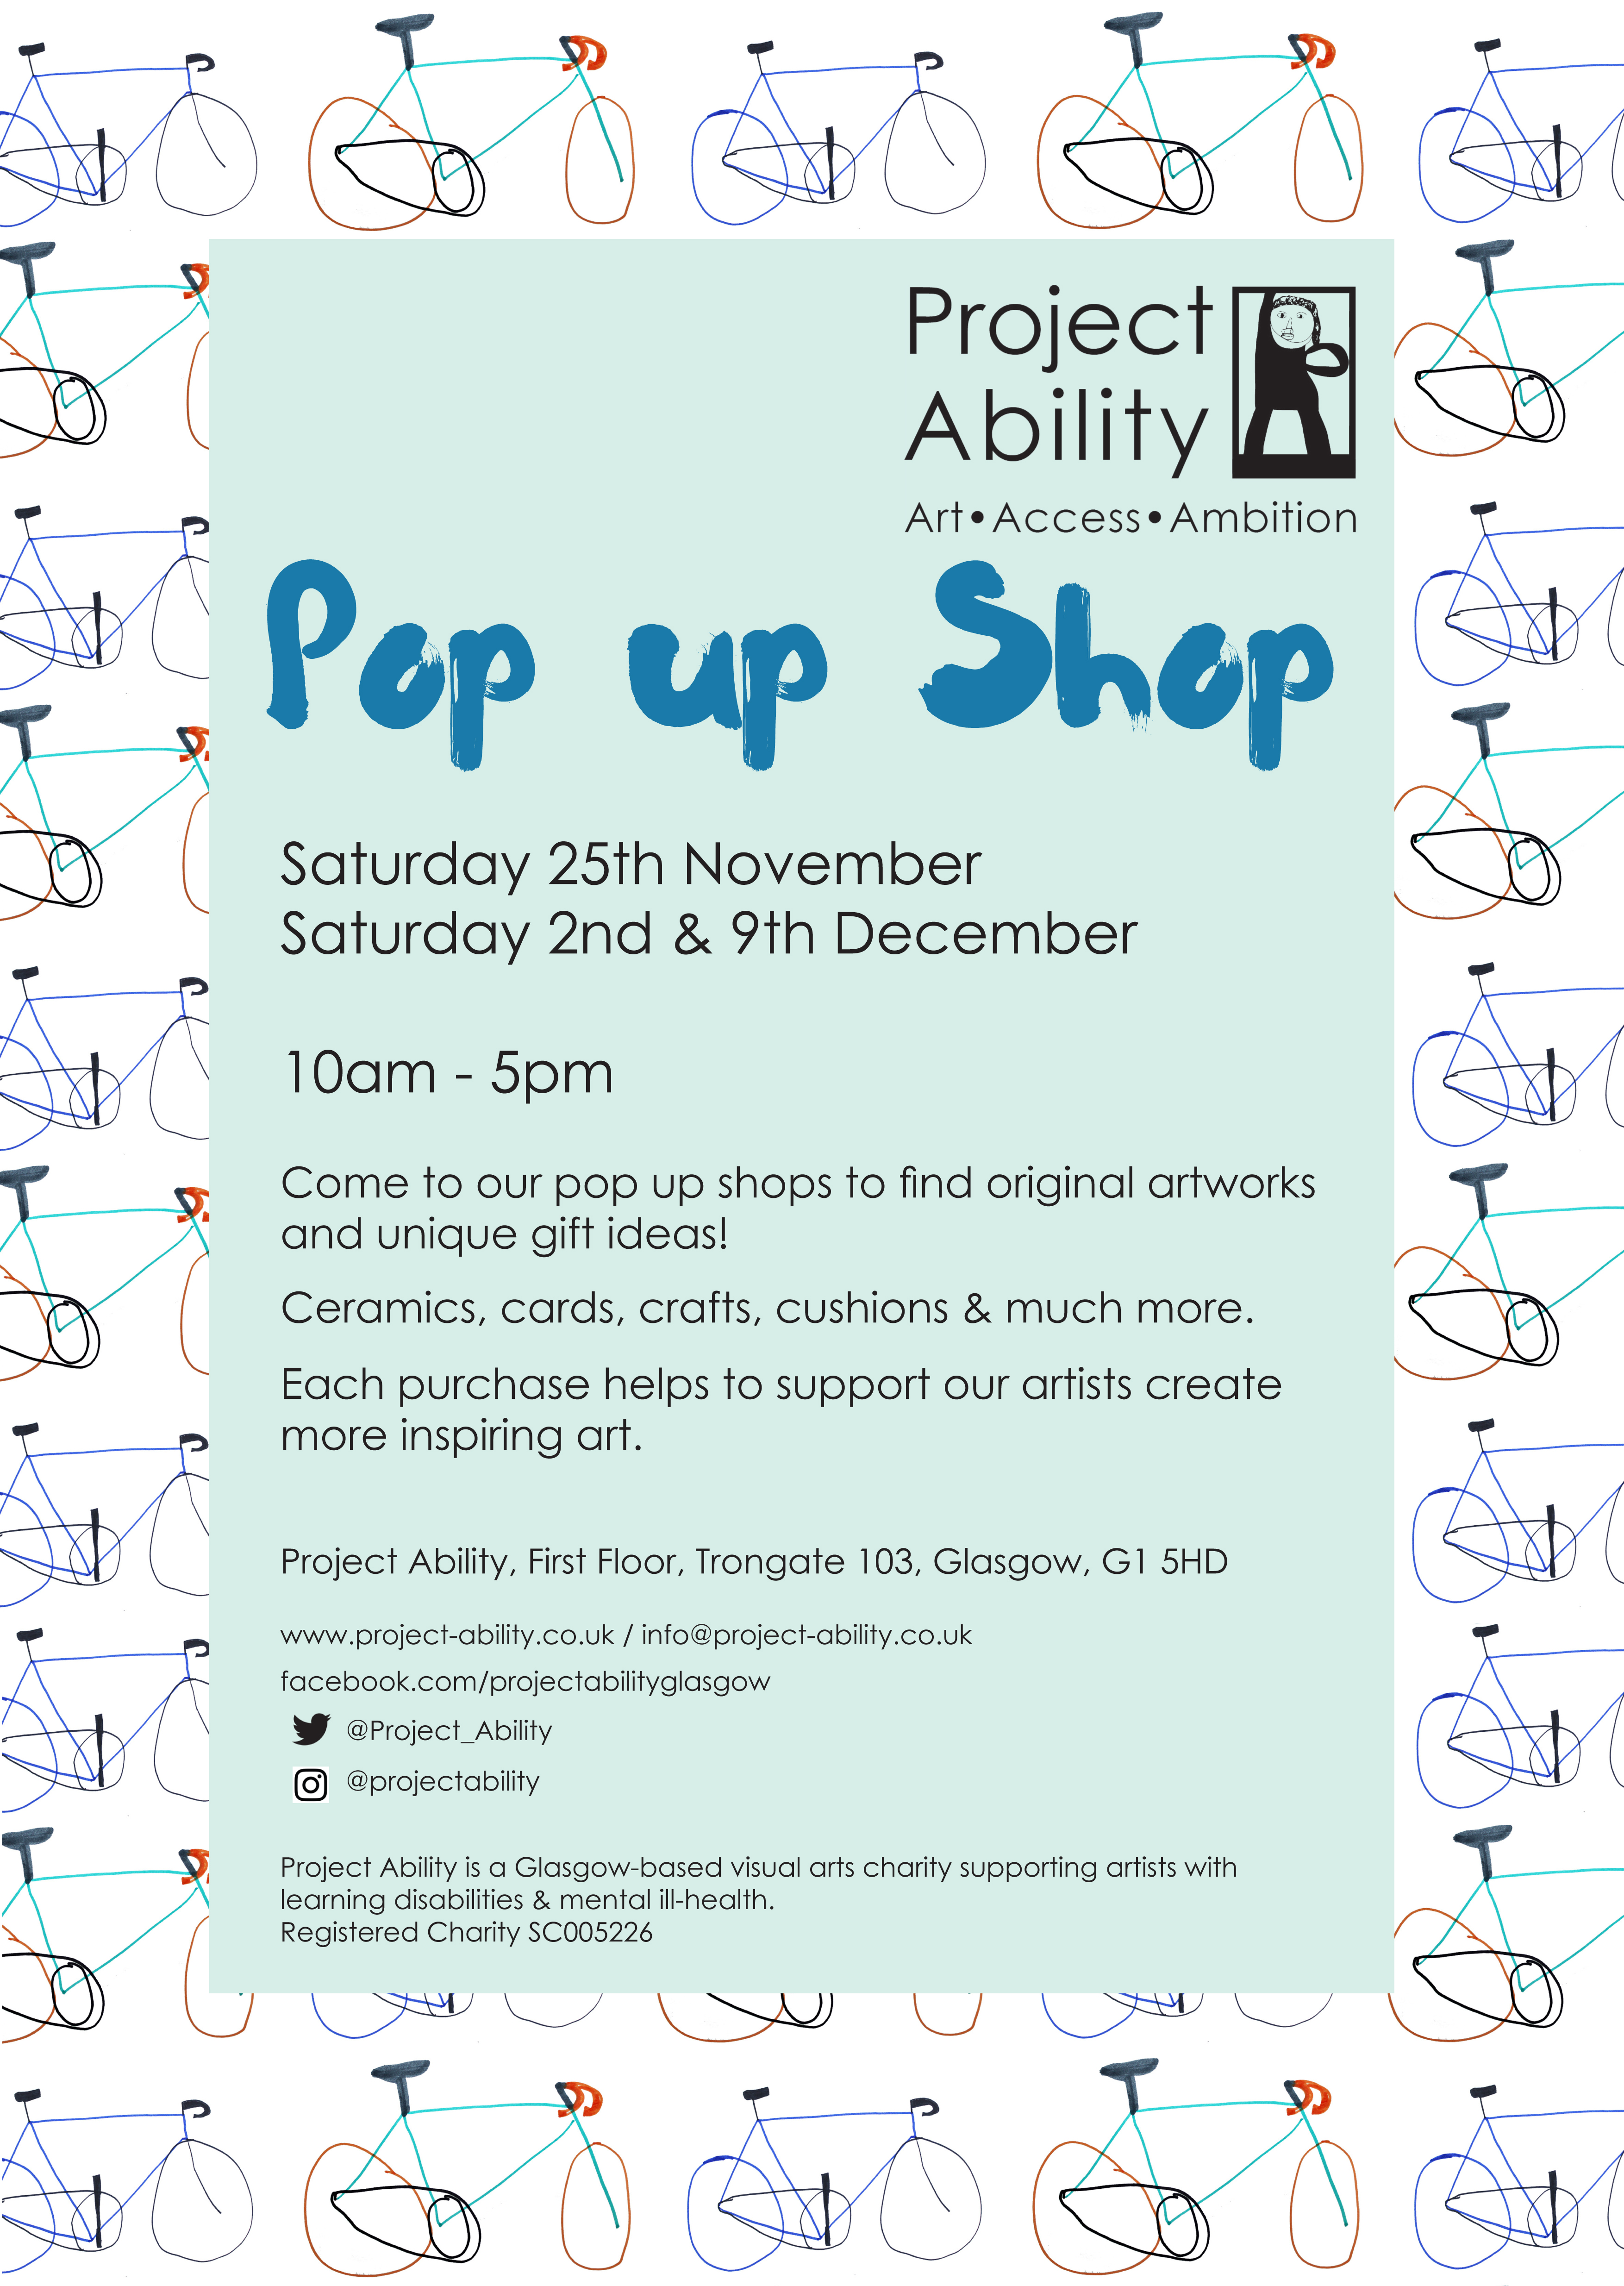 Project Ability pop-up shops coming soon